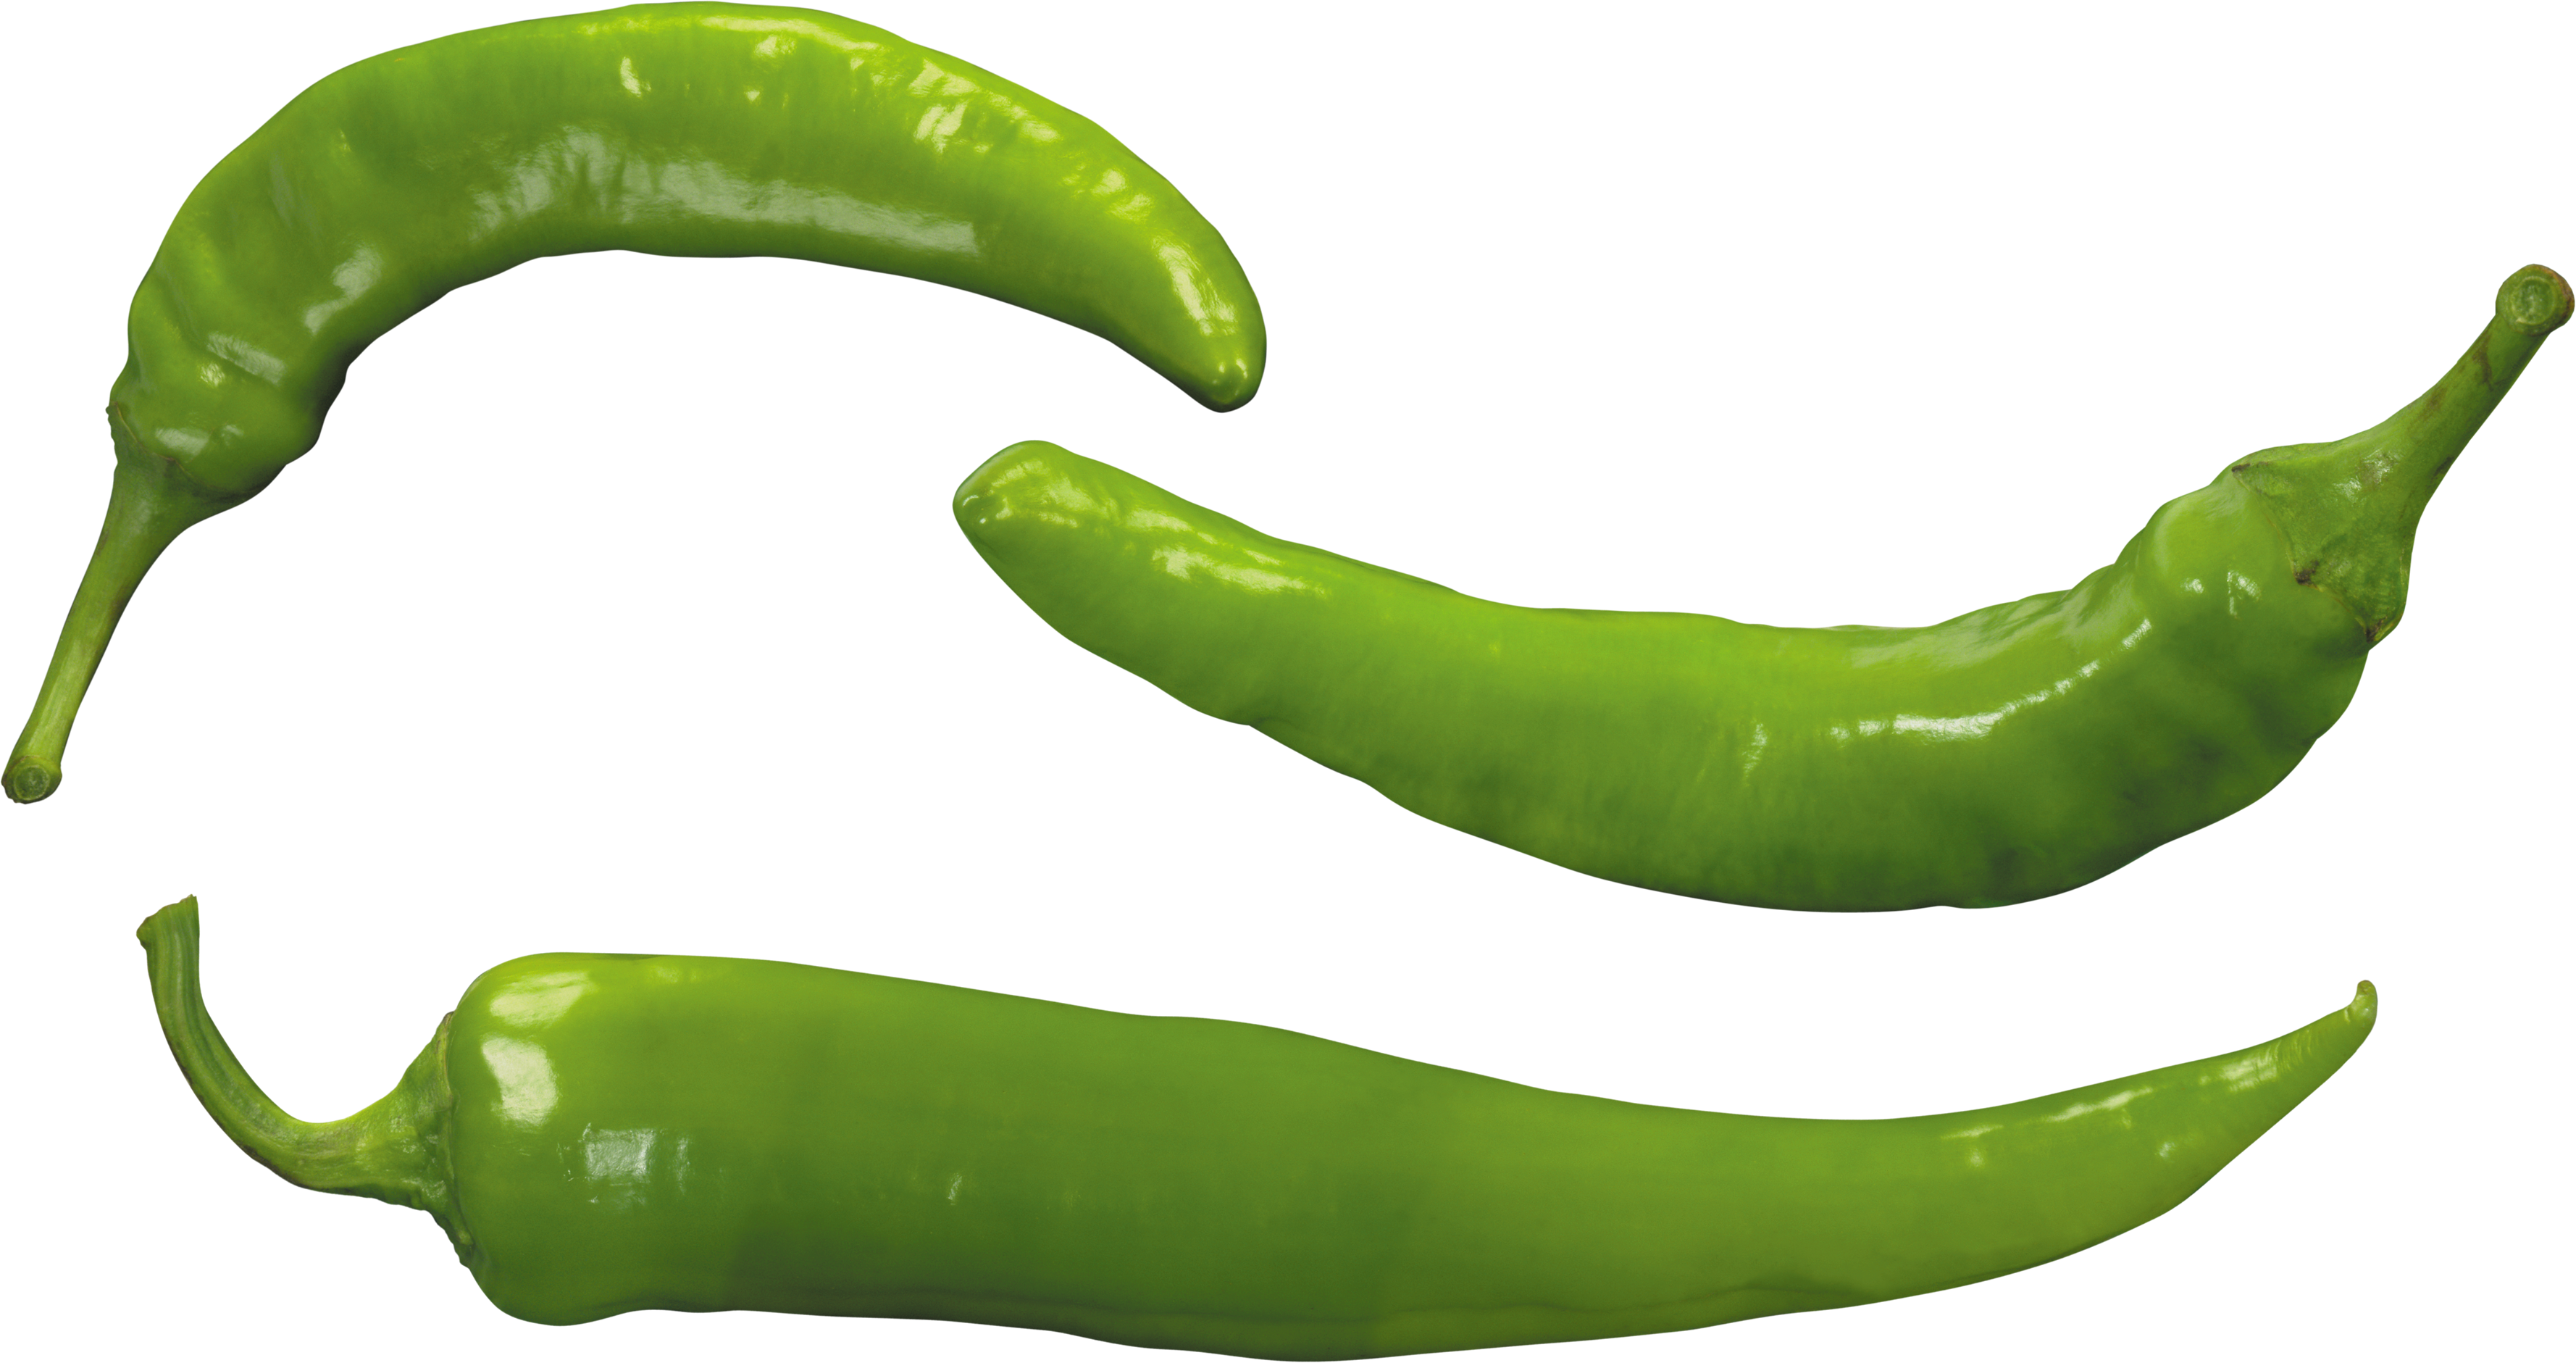 Green bell pepper png. Image free download picures